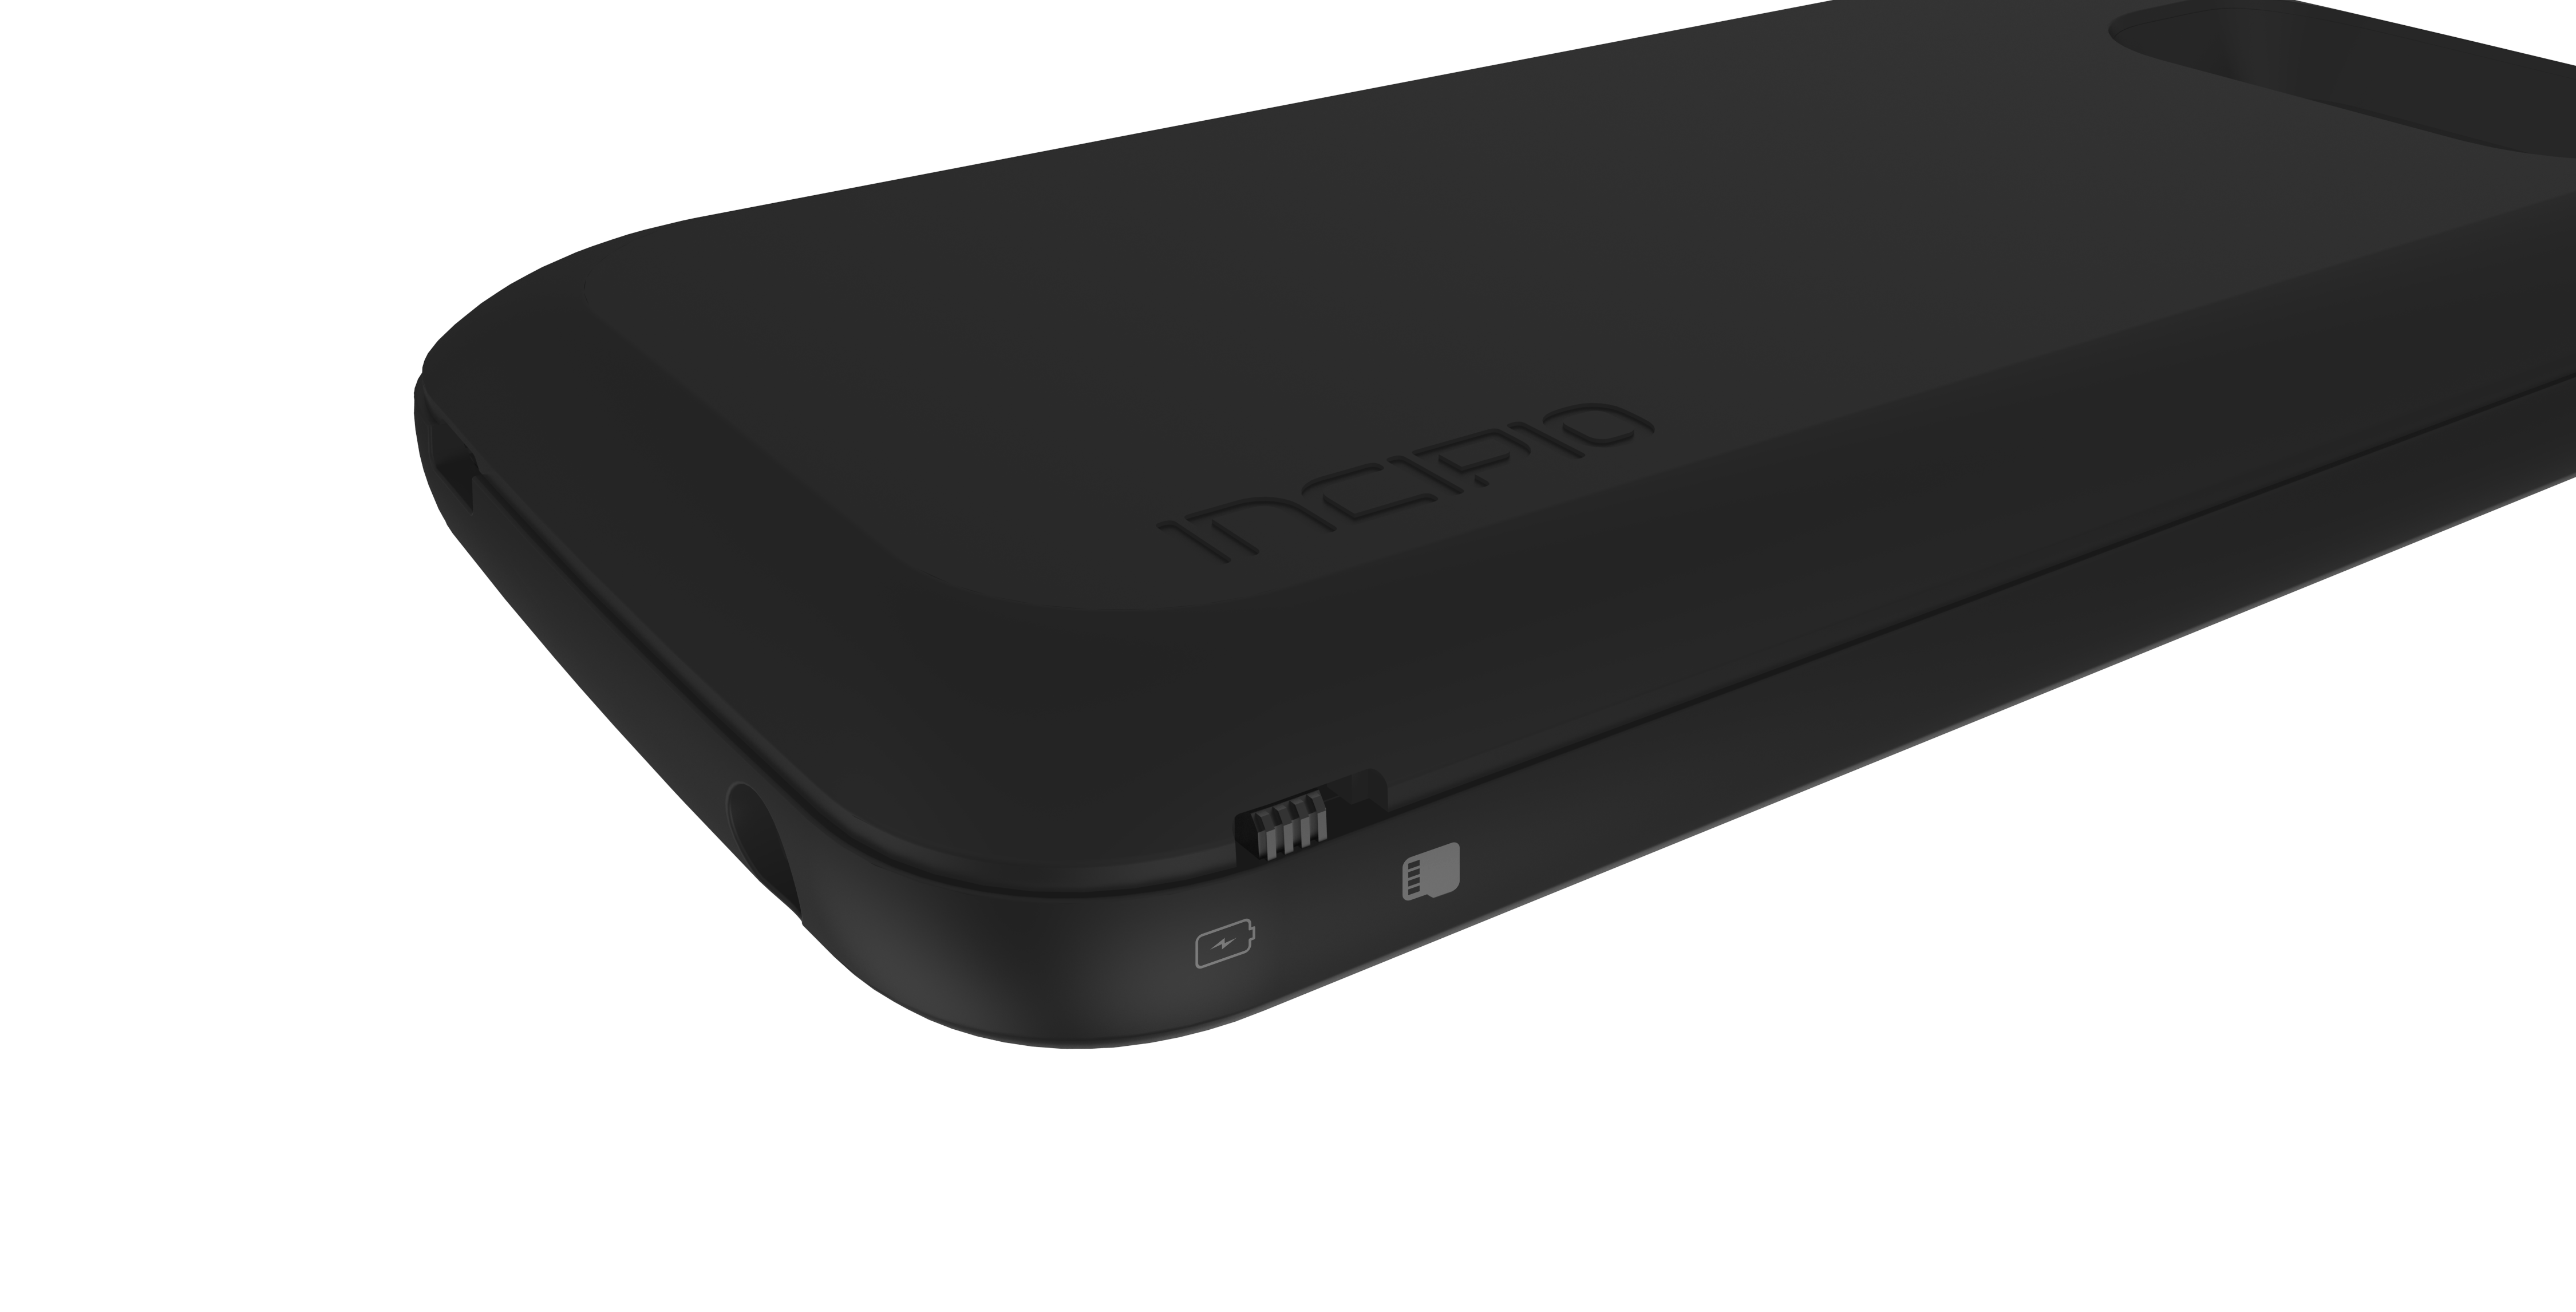 Incipio Offgrid Case Delivers Both A Battery And Sd Slot